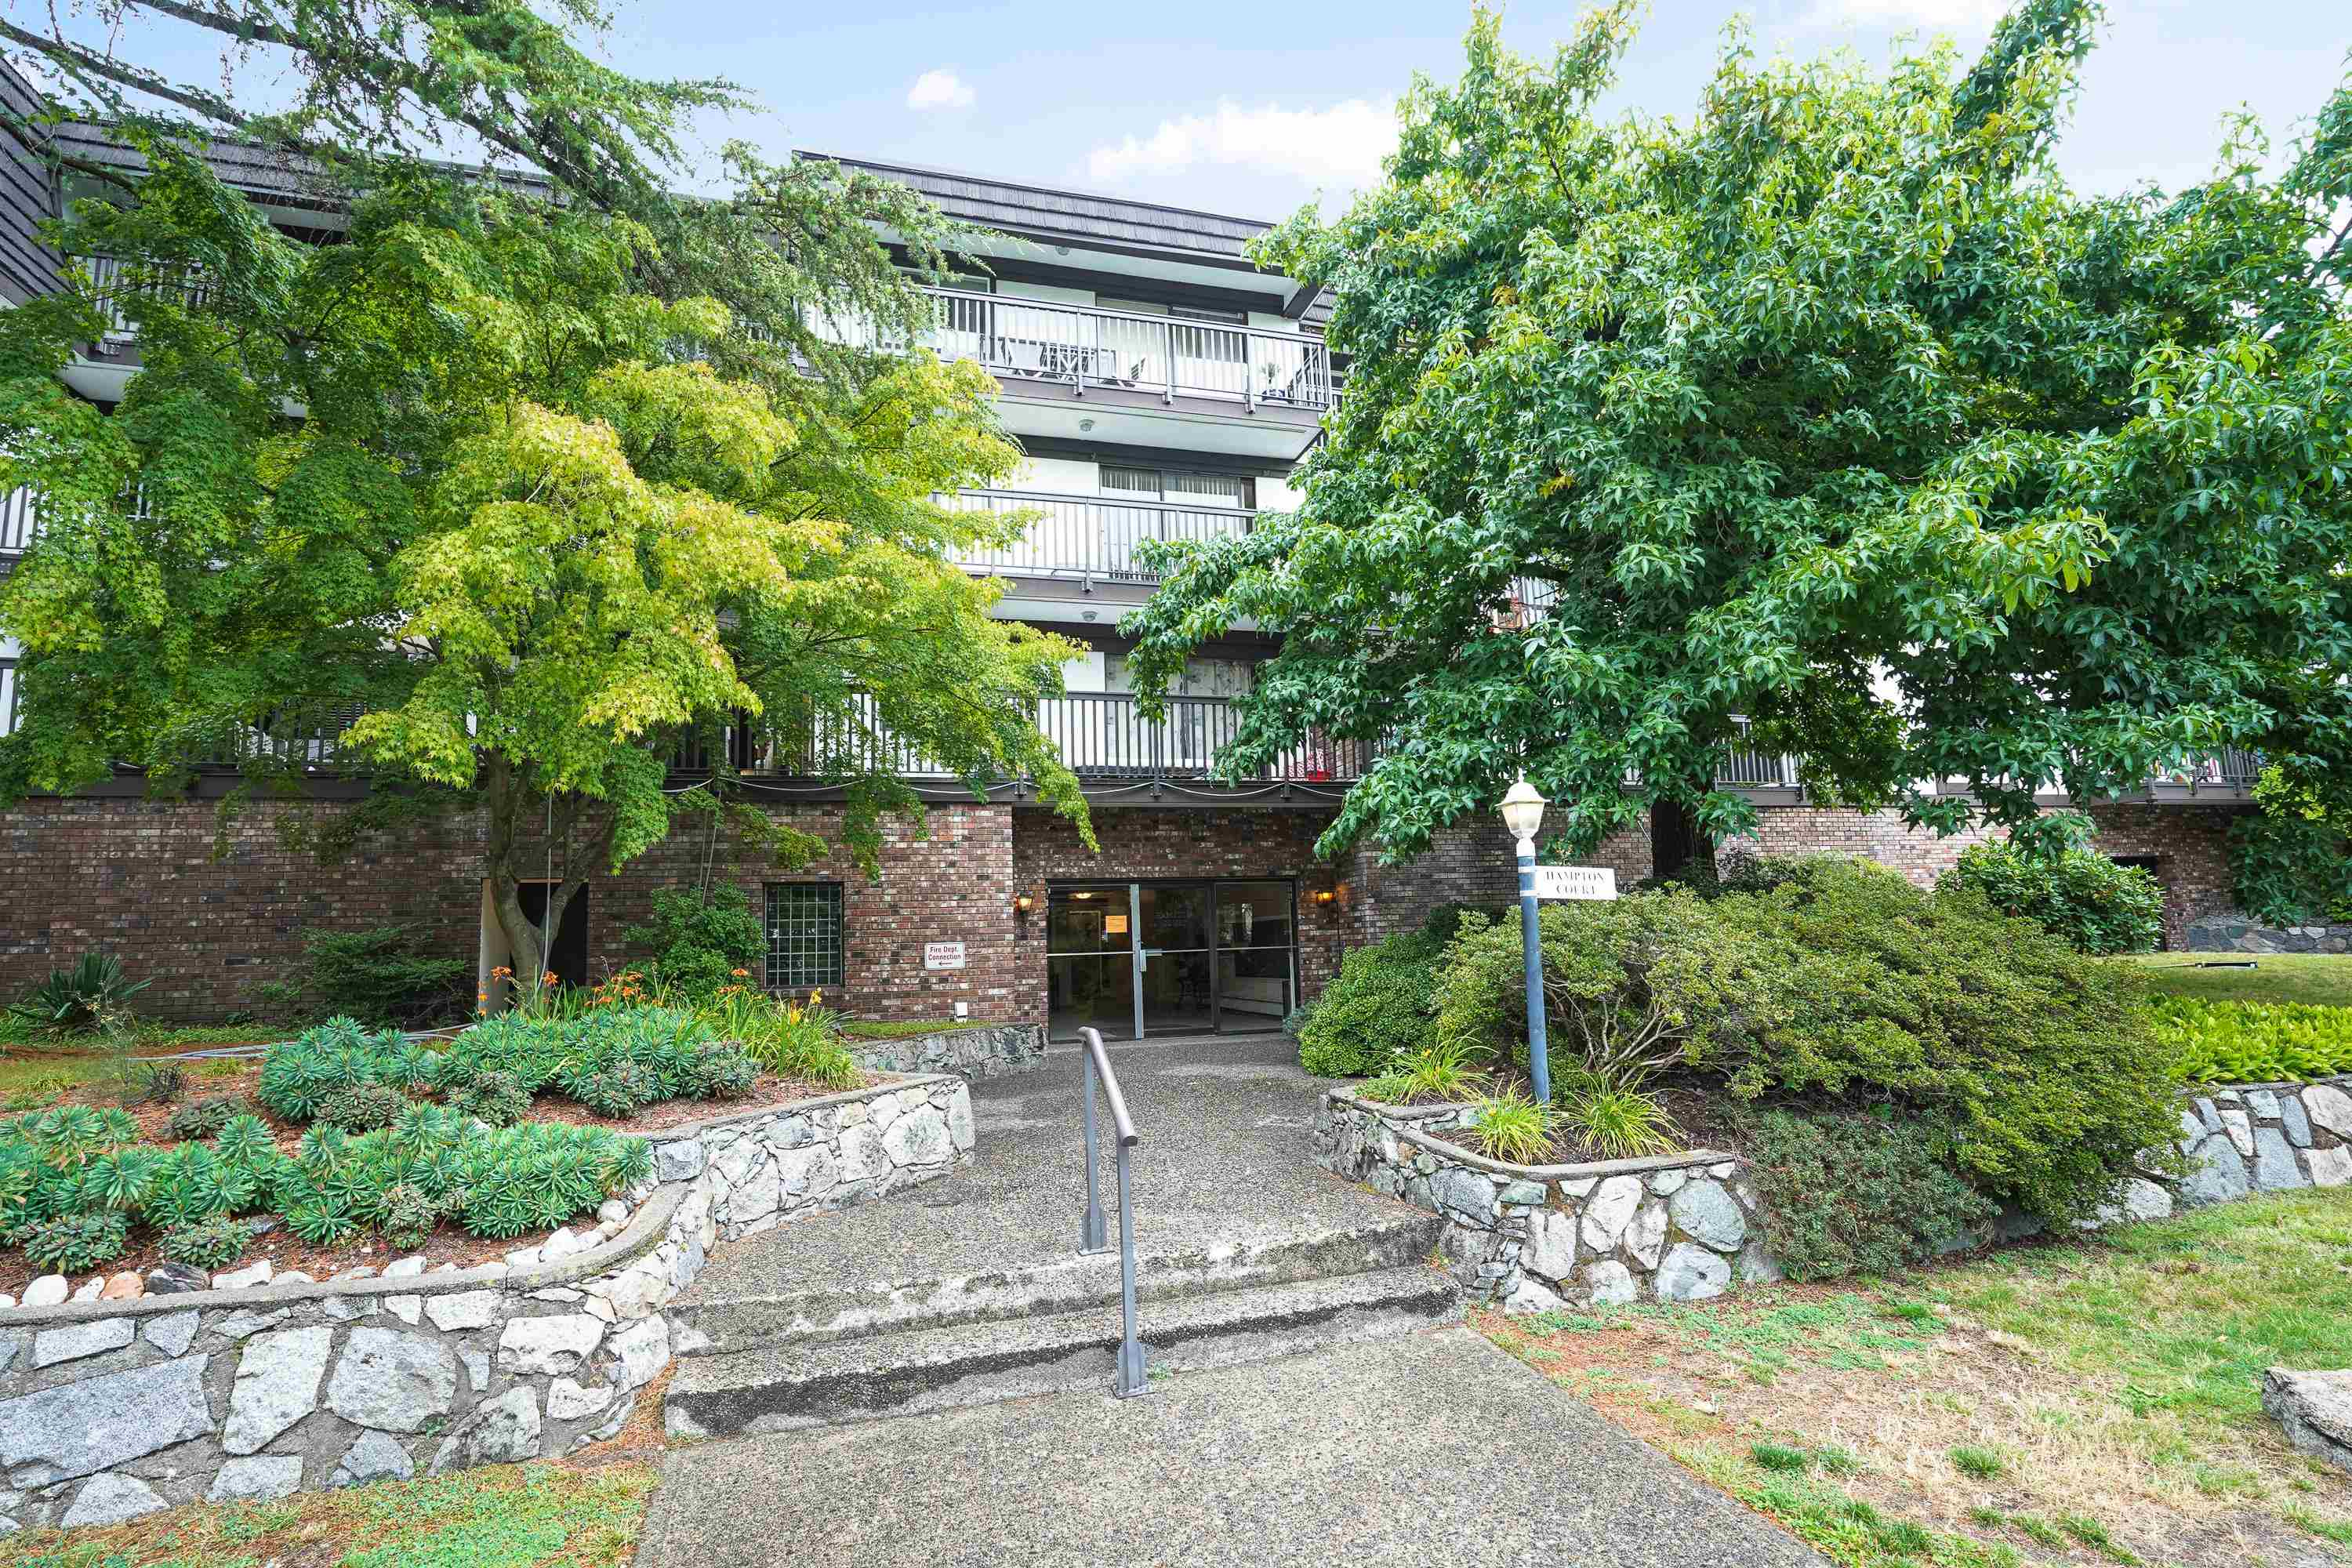 208 270 WEST 3RD STREET - Lower Lonsdale Apartment/Condo for sale, 1 Bedroom (R2615758) - #1